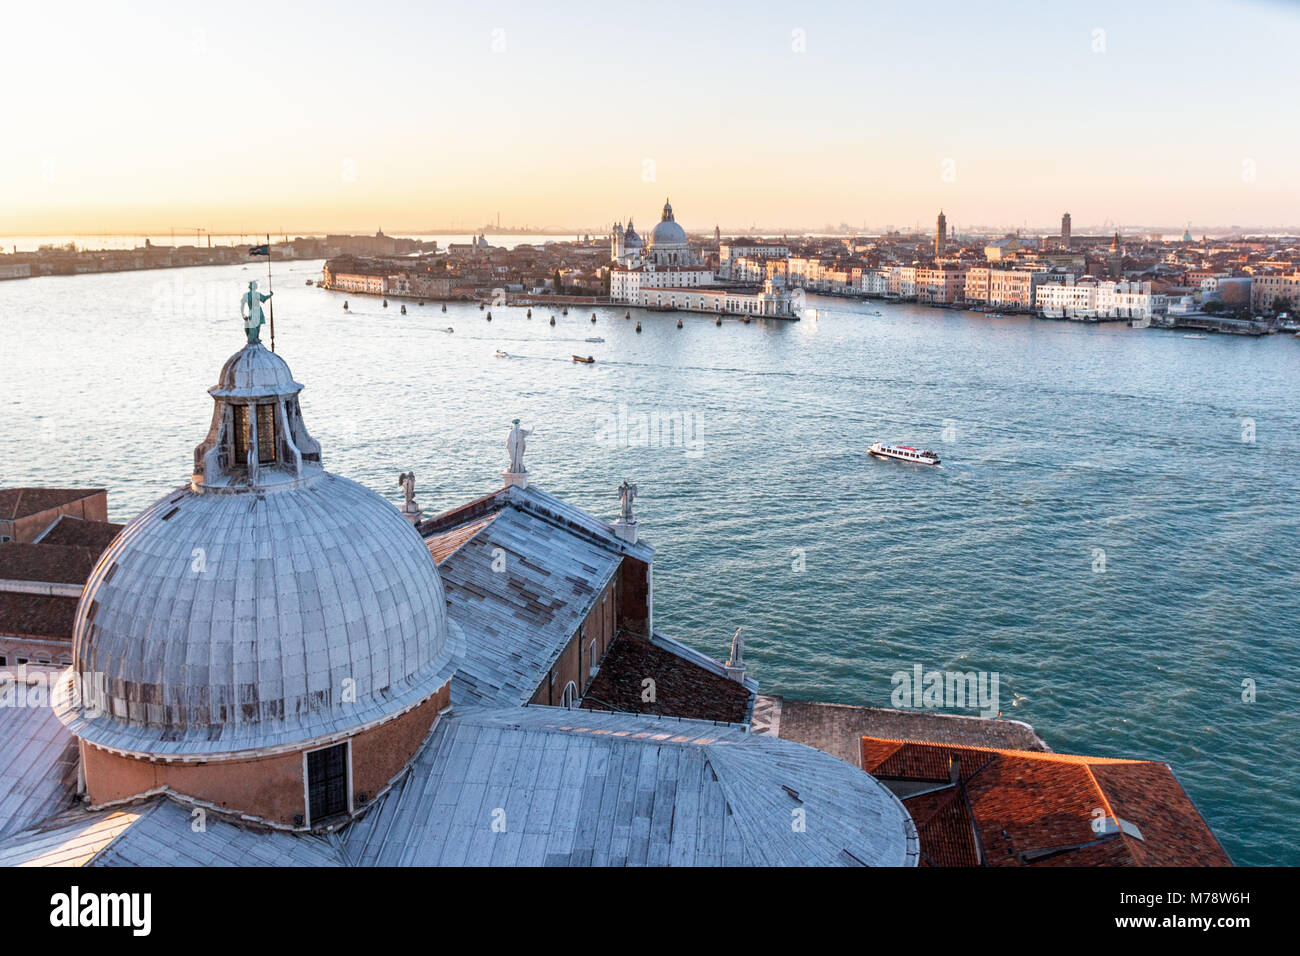 VENICE, ITALY - DECEMBER 20, 2017: Aerial view over the Grand Channel towards the church of Santa Maria della Salute Stock Photo